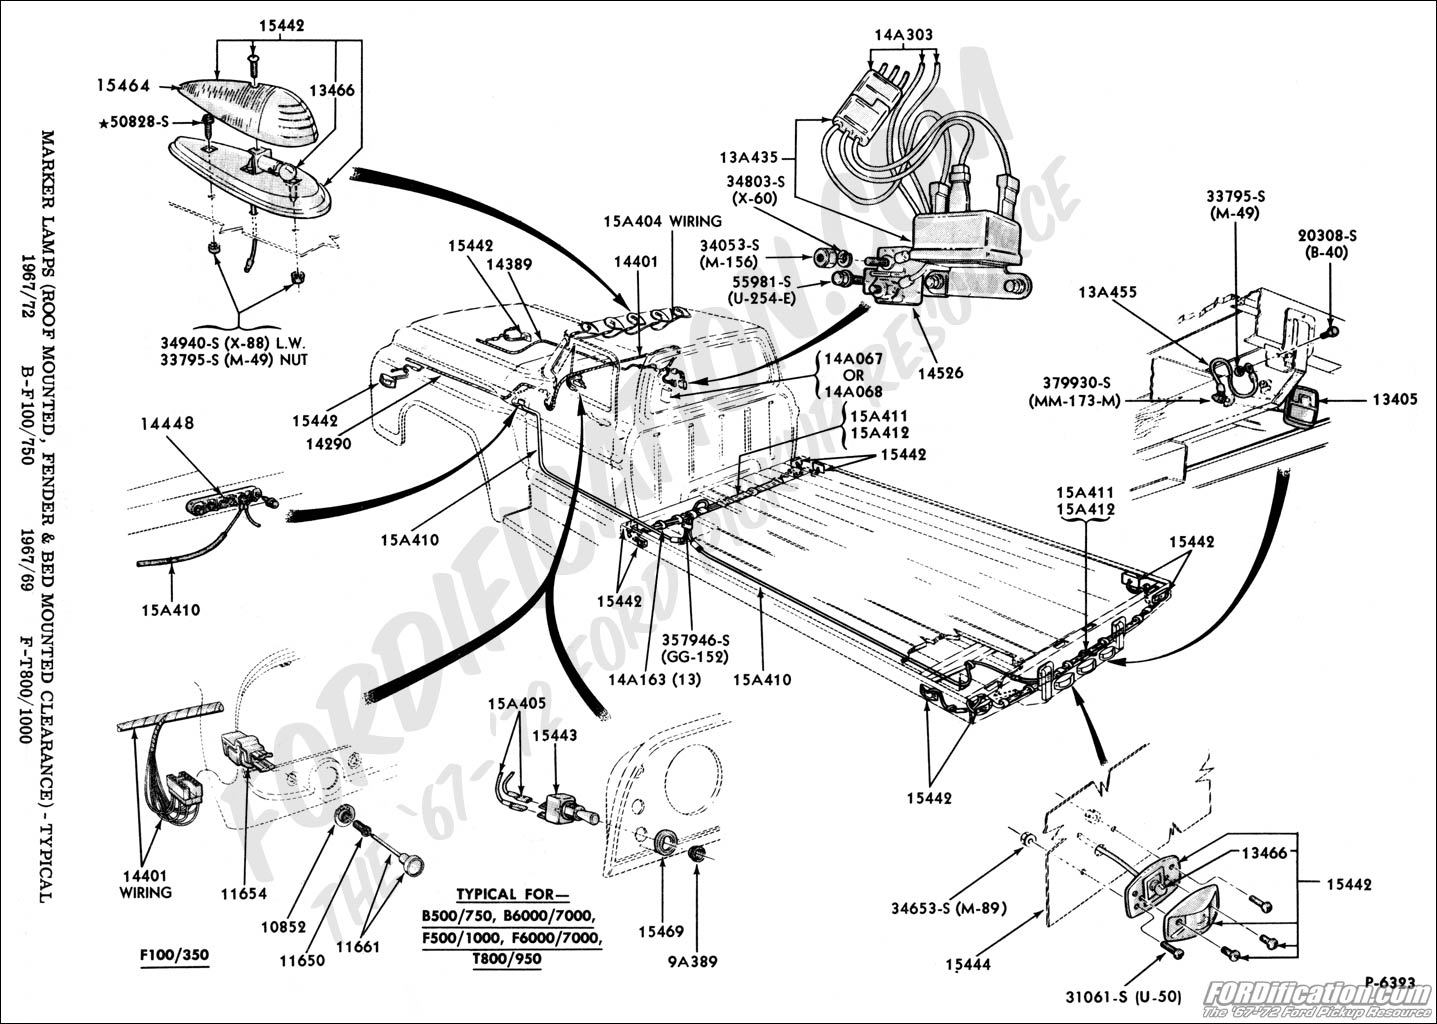 Cab Light Wiring Diagram, Cab, Get Free Image About Wiring